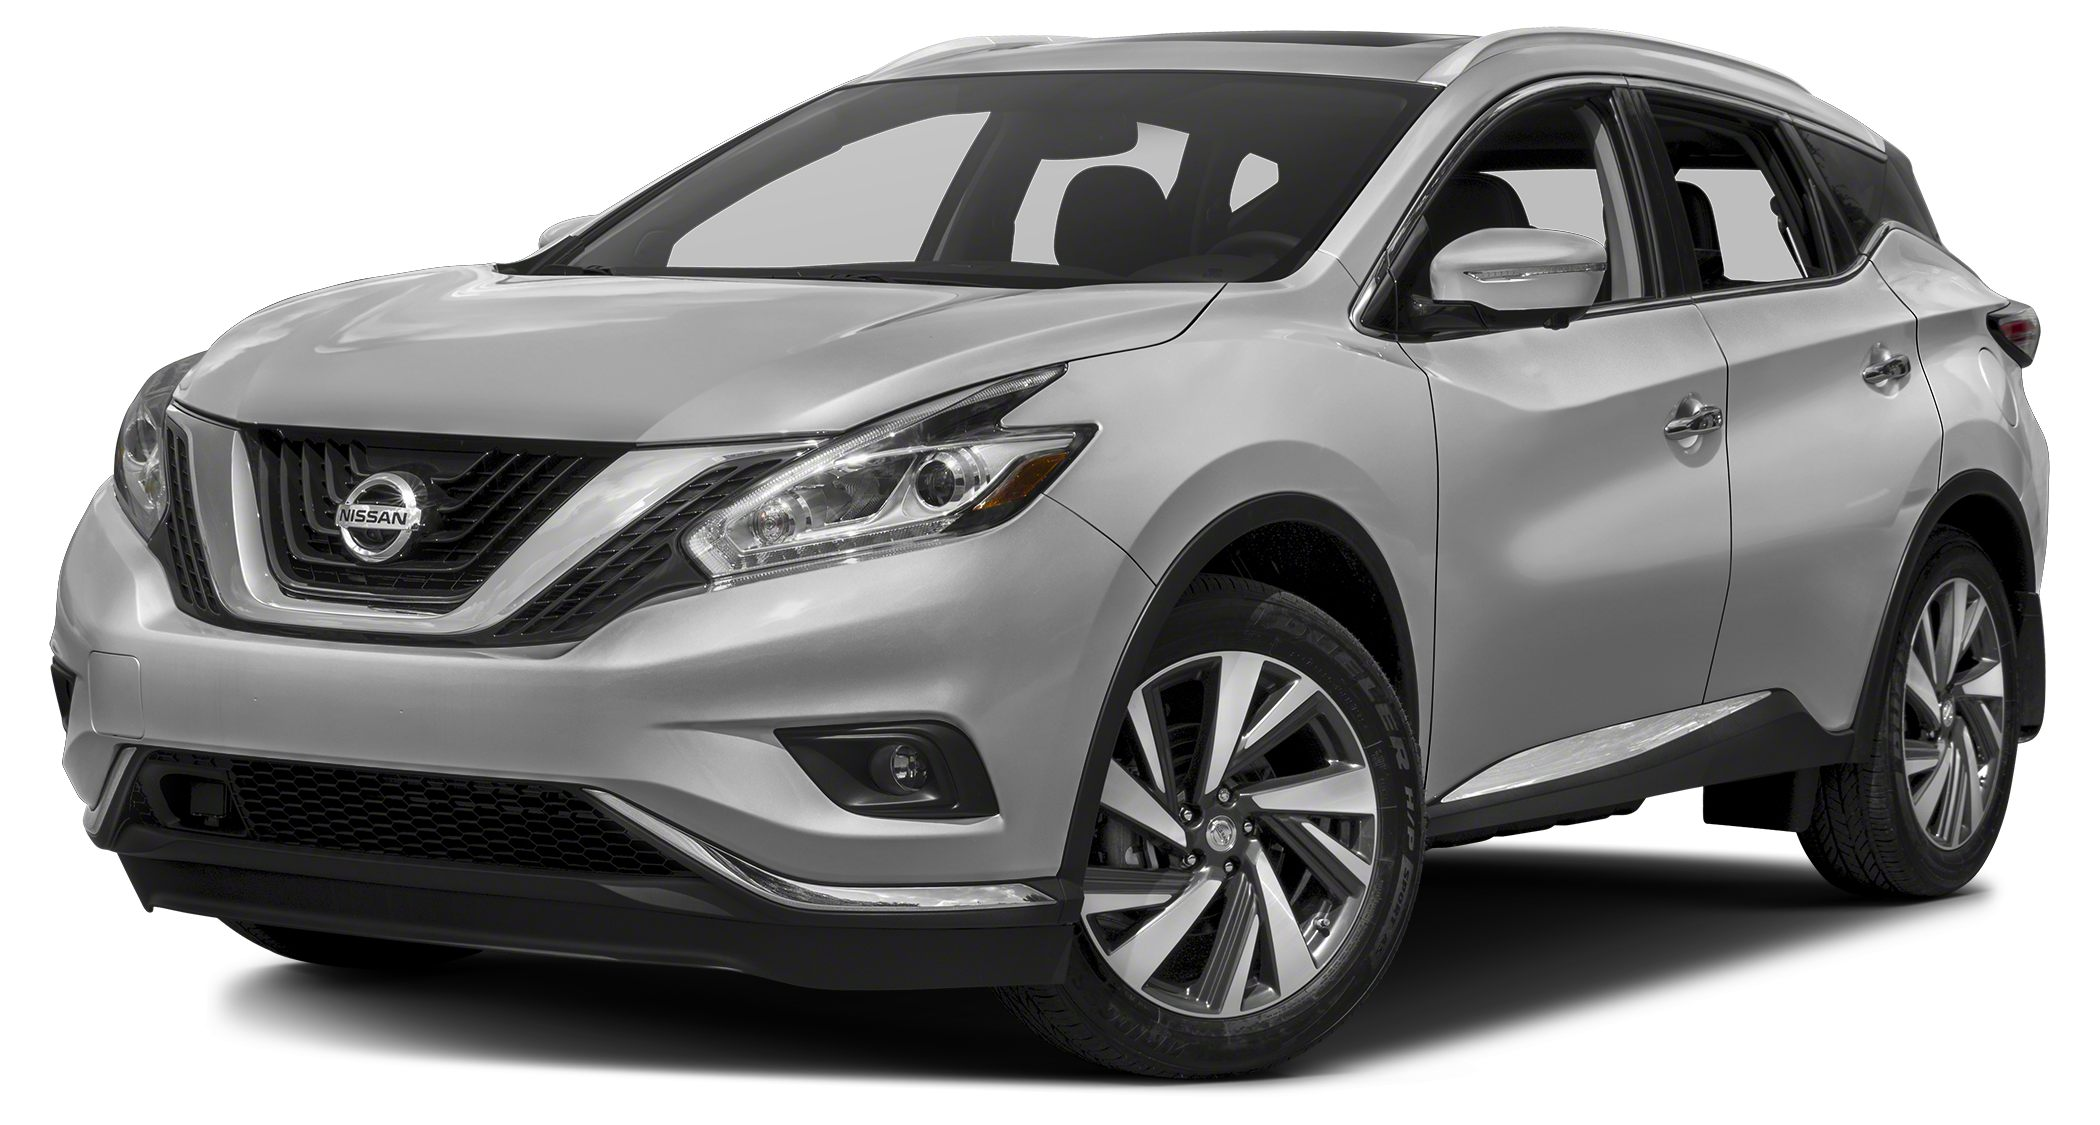 2016 Nissan Murano Platinum Miles 10Color Brilliant Silver Metallic Stock DU7163009 VIN 5N1A